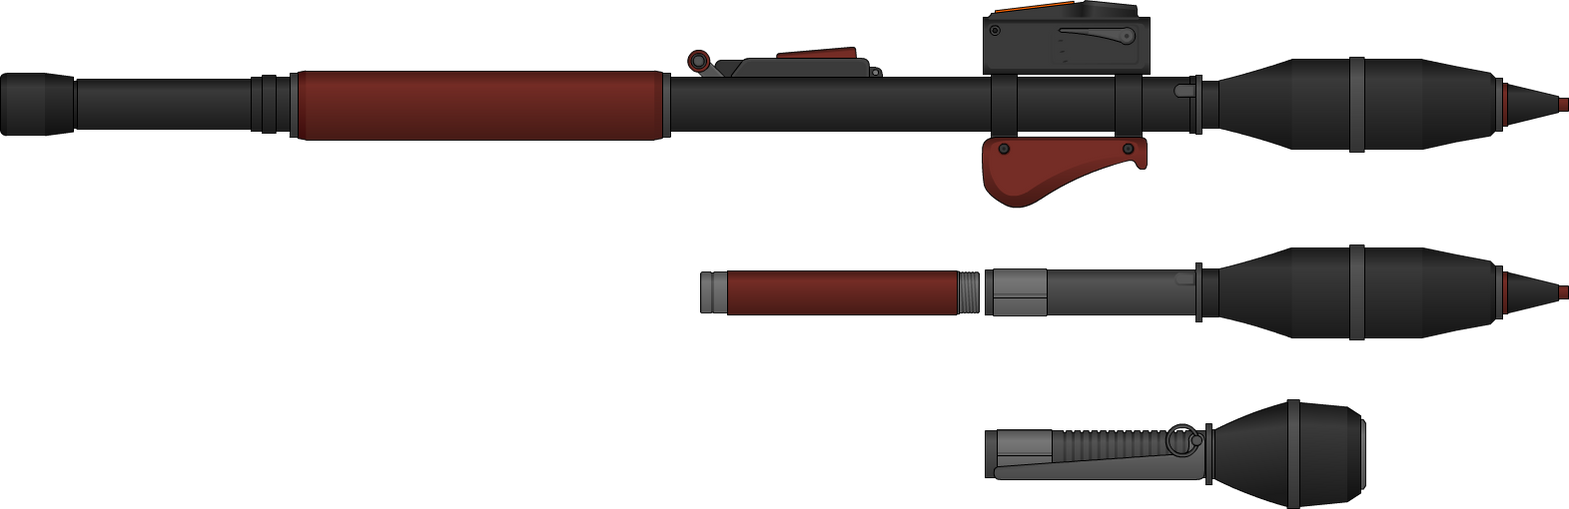 Type 8 Assault Weapon System by Semi-II